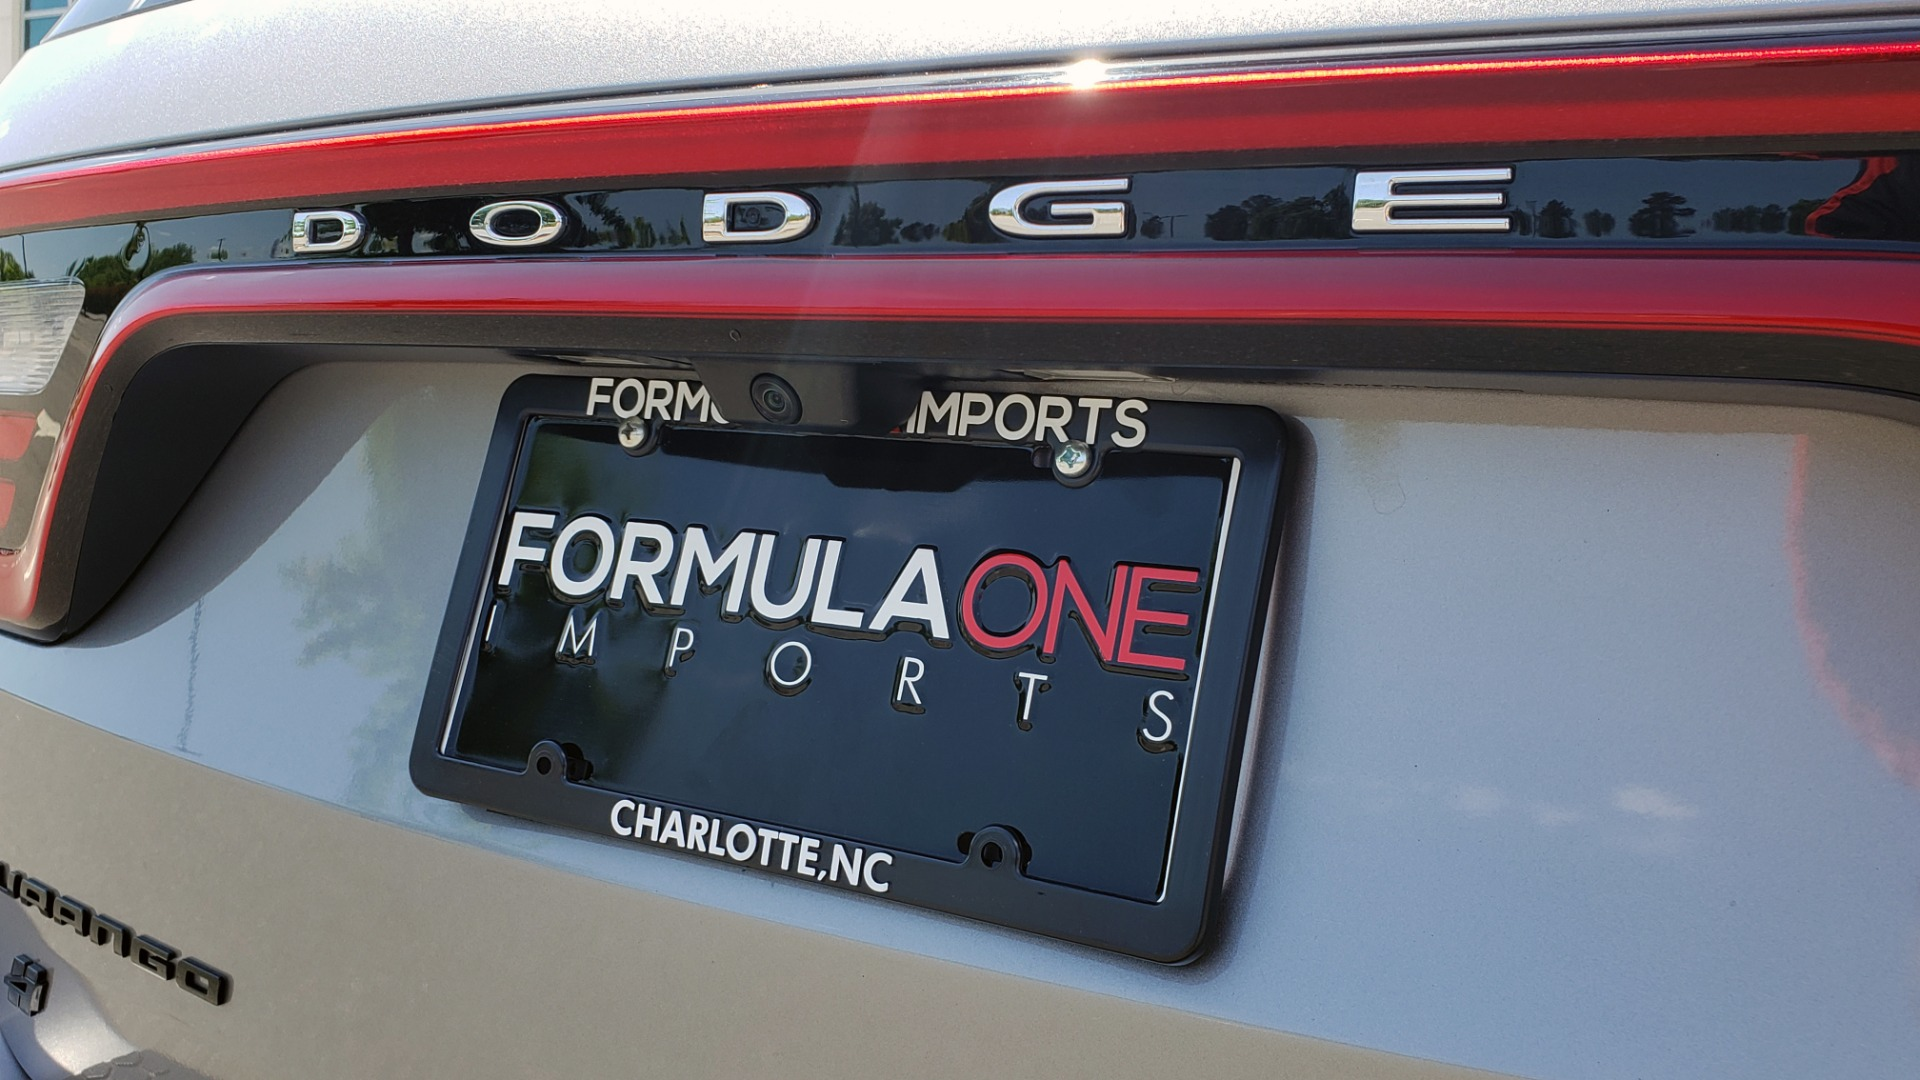 Used 2019 Dodge DURANGO R/T BLACKTOP AWD / TECH / ADAPT CRUS / TOW GROUP / SUNROOF / REARVIEW for sale Sold at Formula Imports in Charlotte NC 28227 35